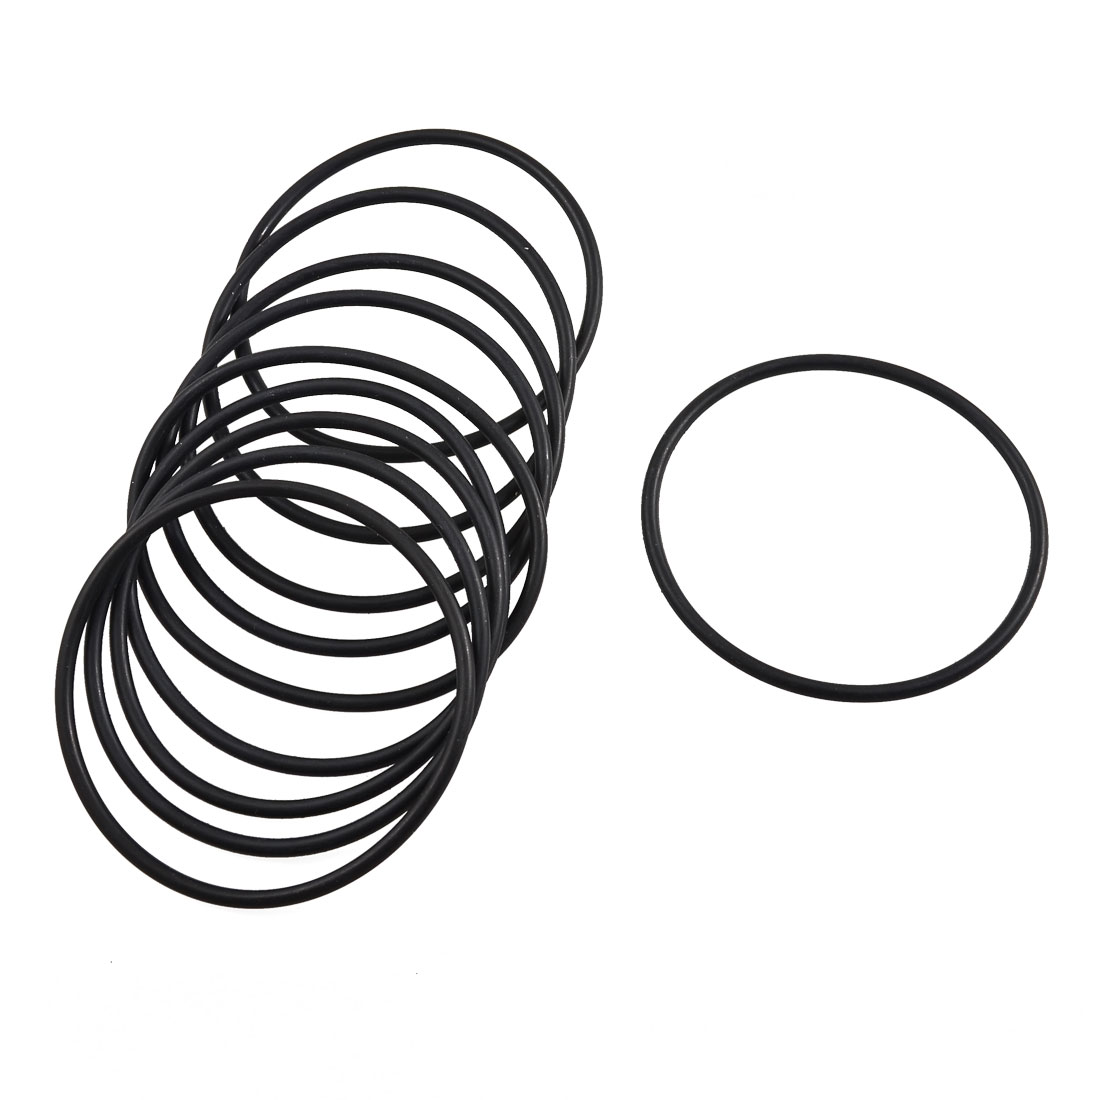 10 Pcs Mechanical Black Rubber O Ring Oil Seal Gaskets 70mm x 63.8mm x 3.1mm